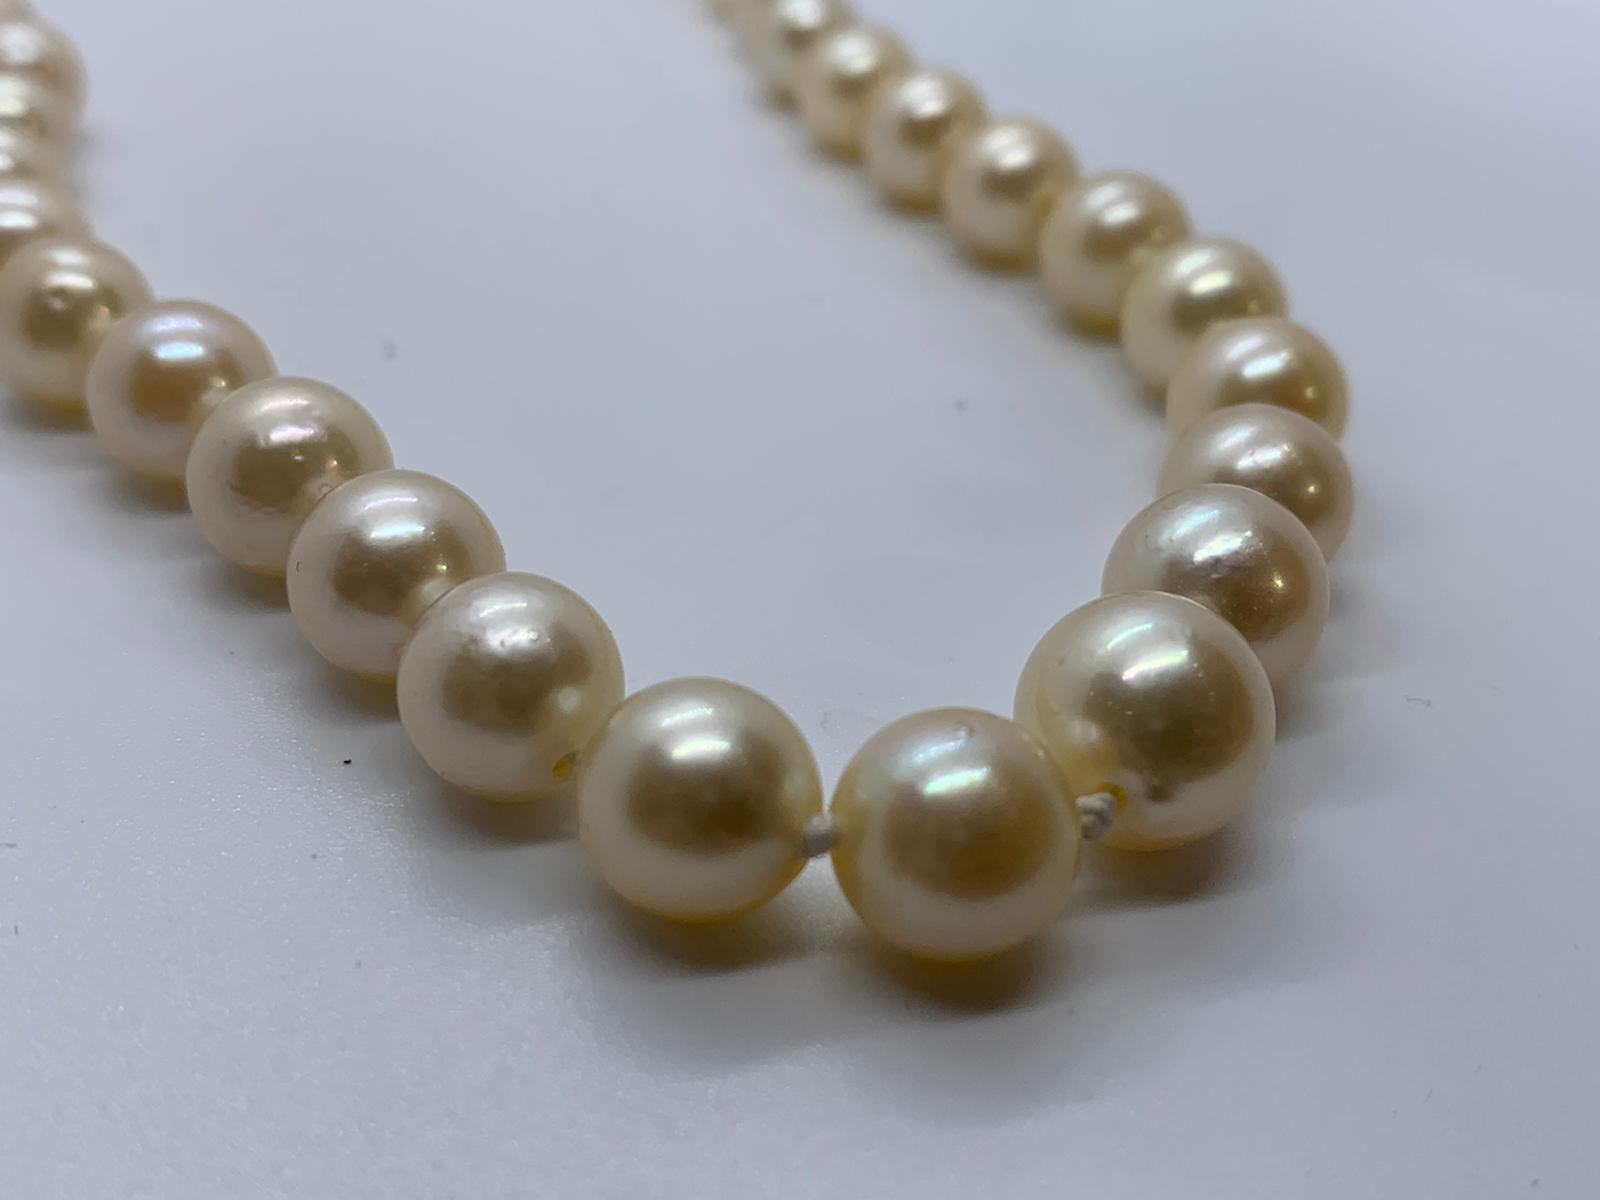 Lot 18 - Strand of pearls